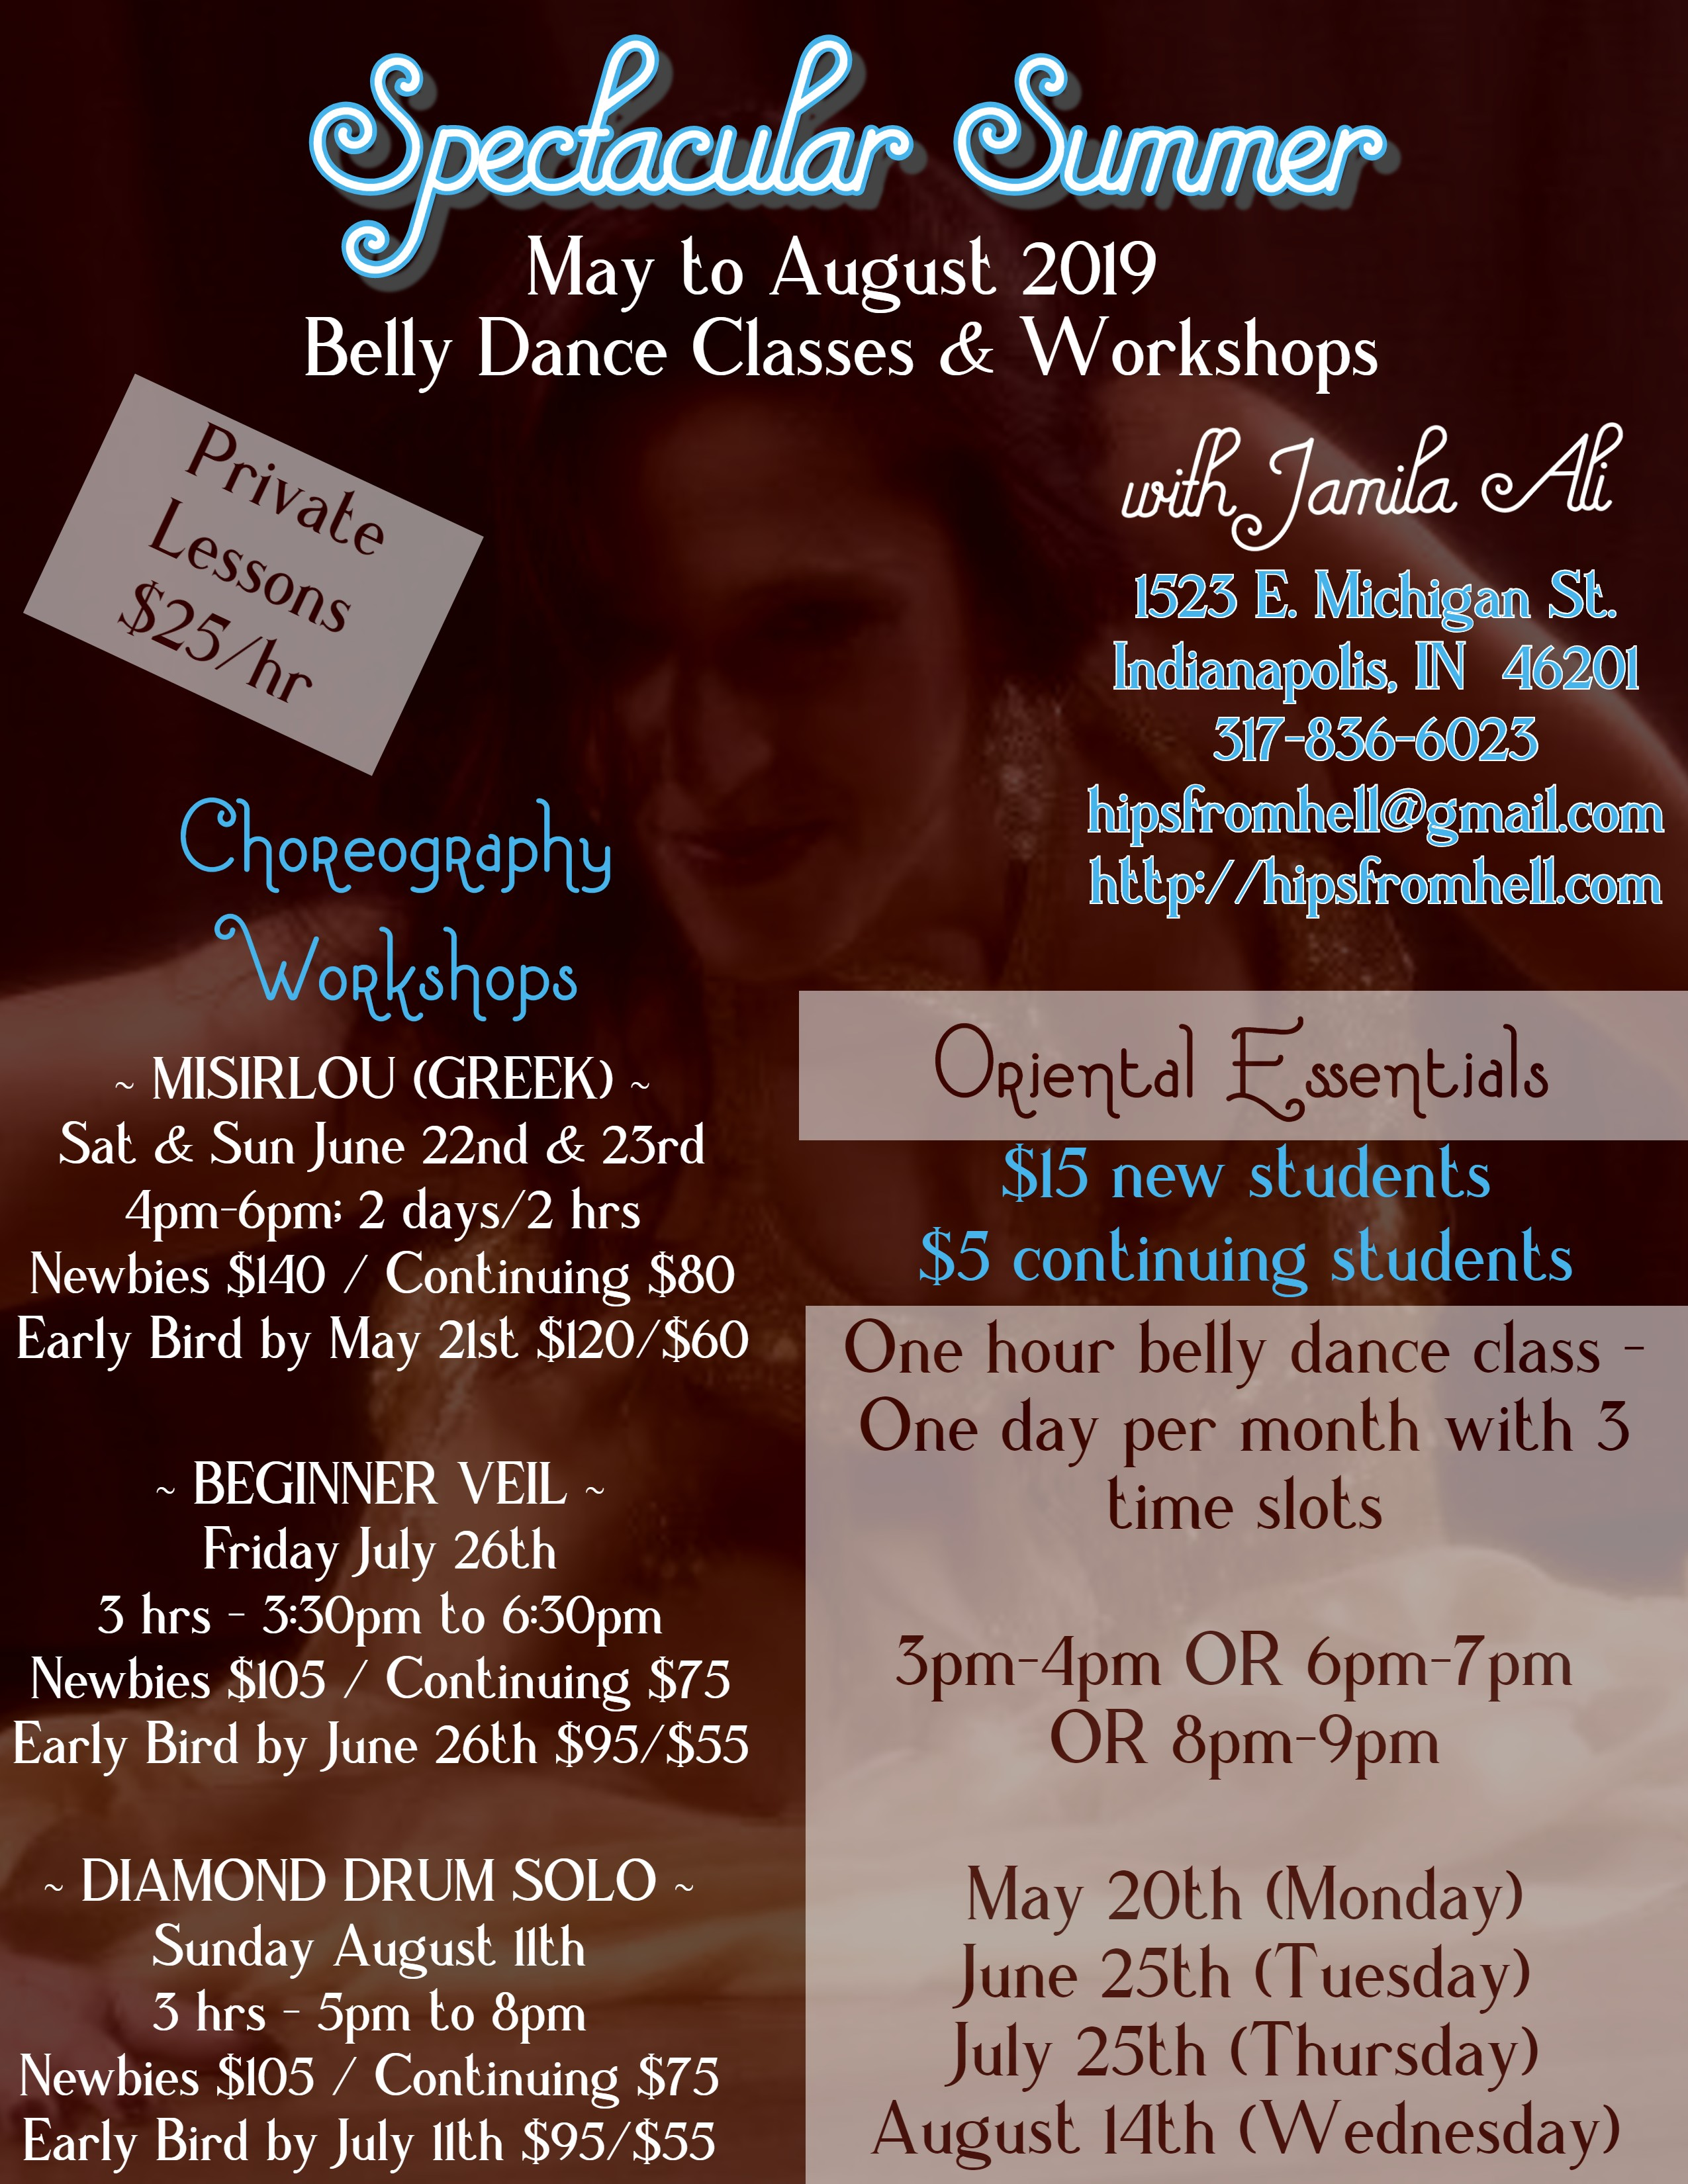 A Spectacular Summer presented by Jamila's Belly Dance Studio